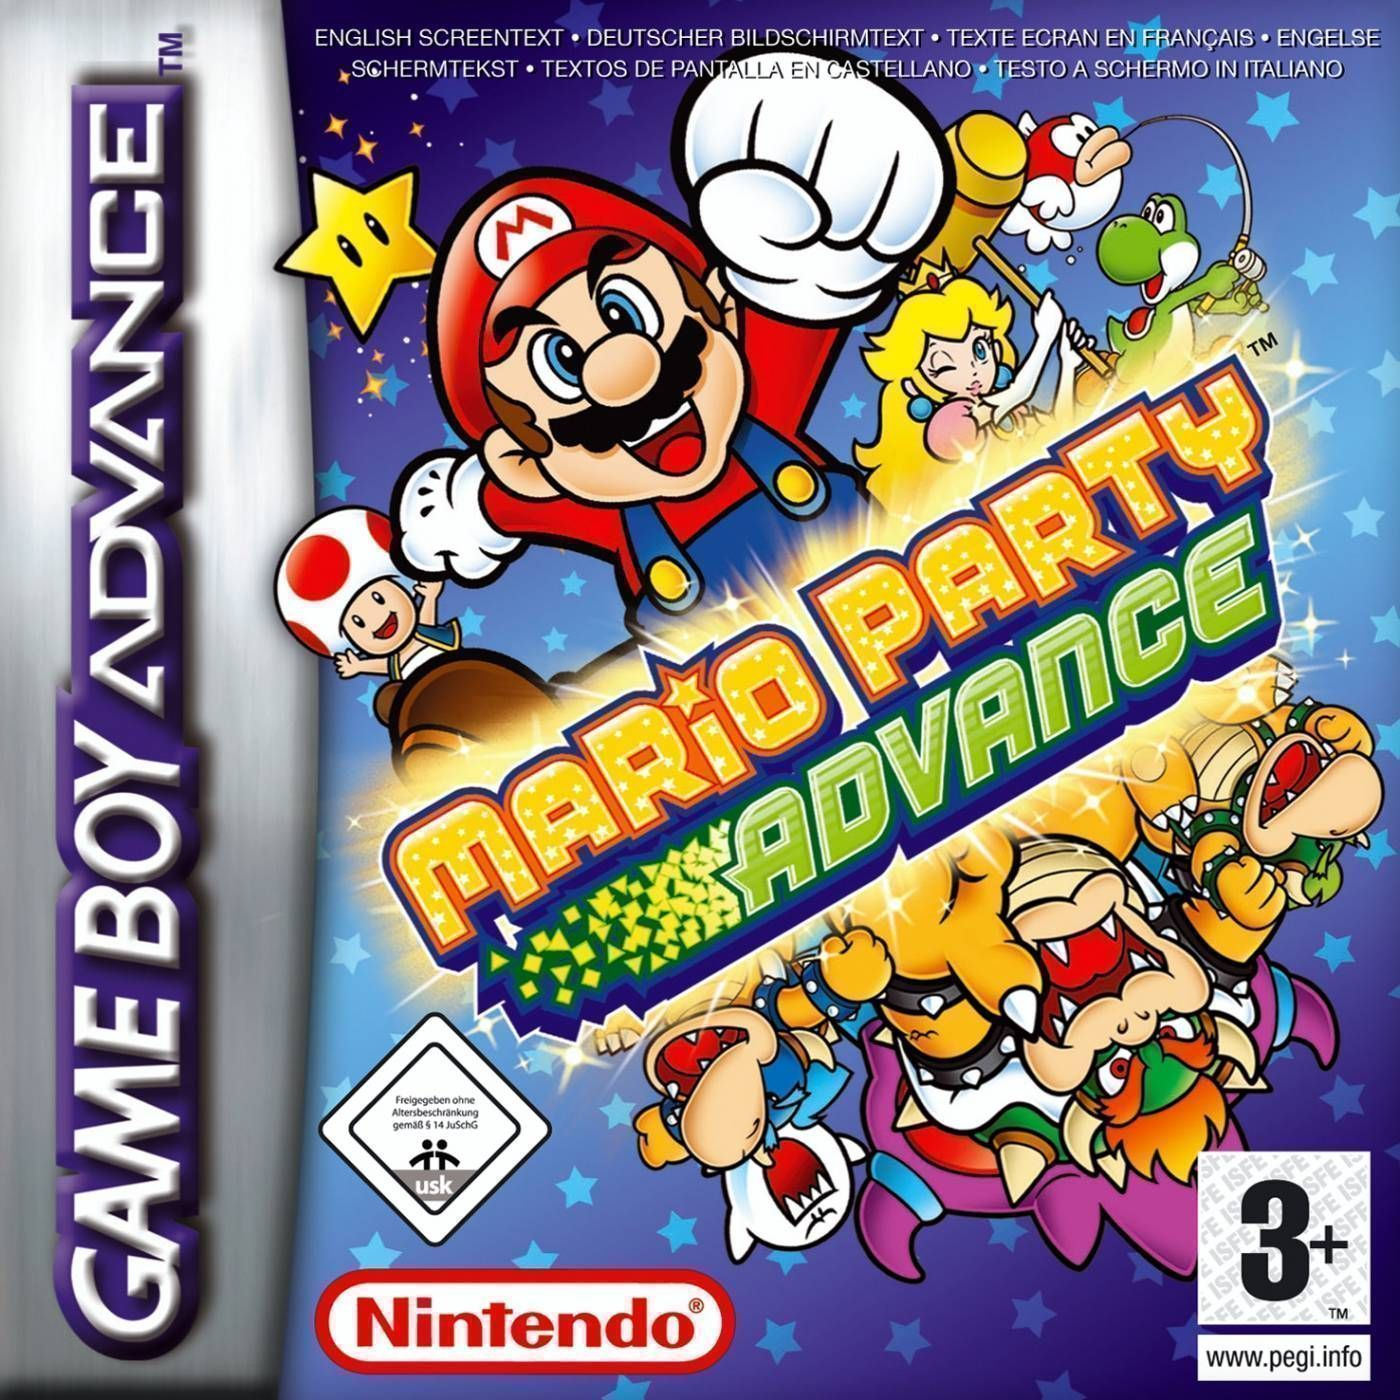 Gameboy color roms for free - Mario Party Advance